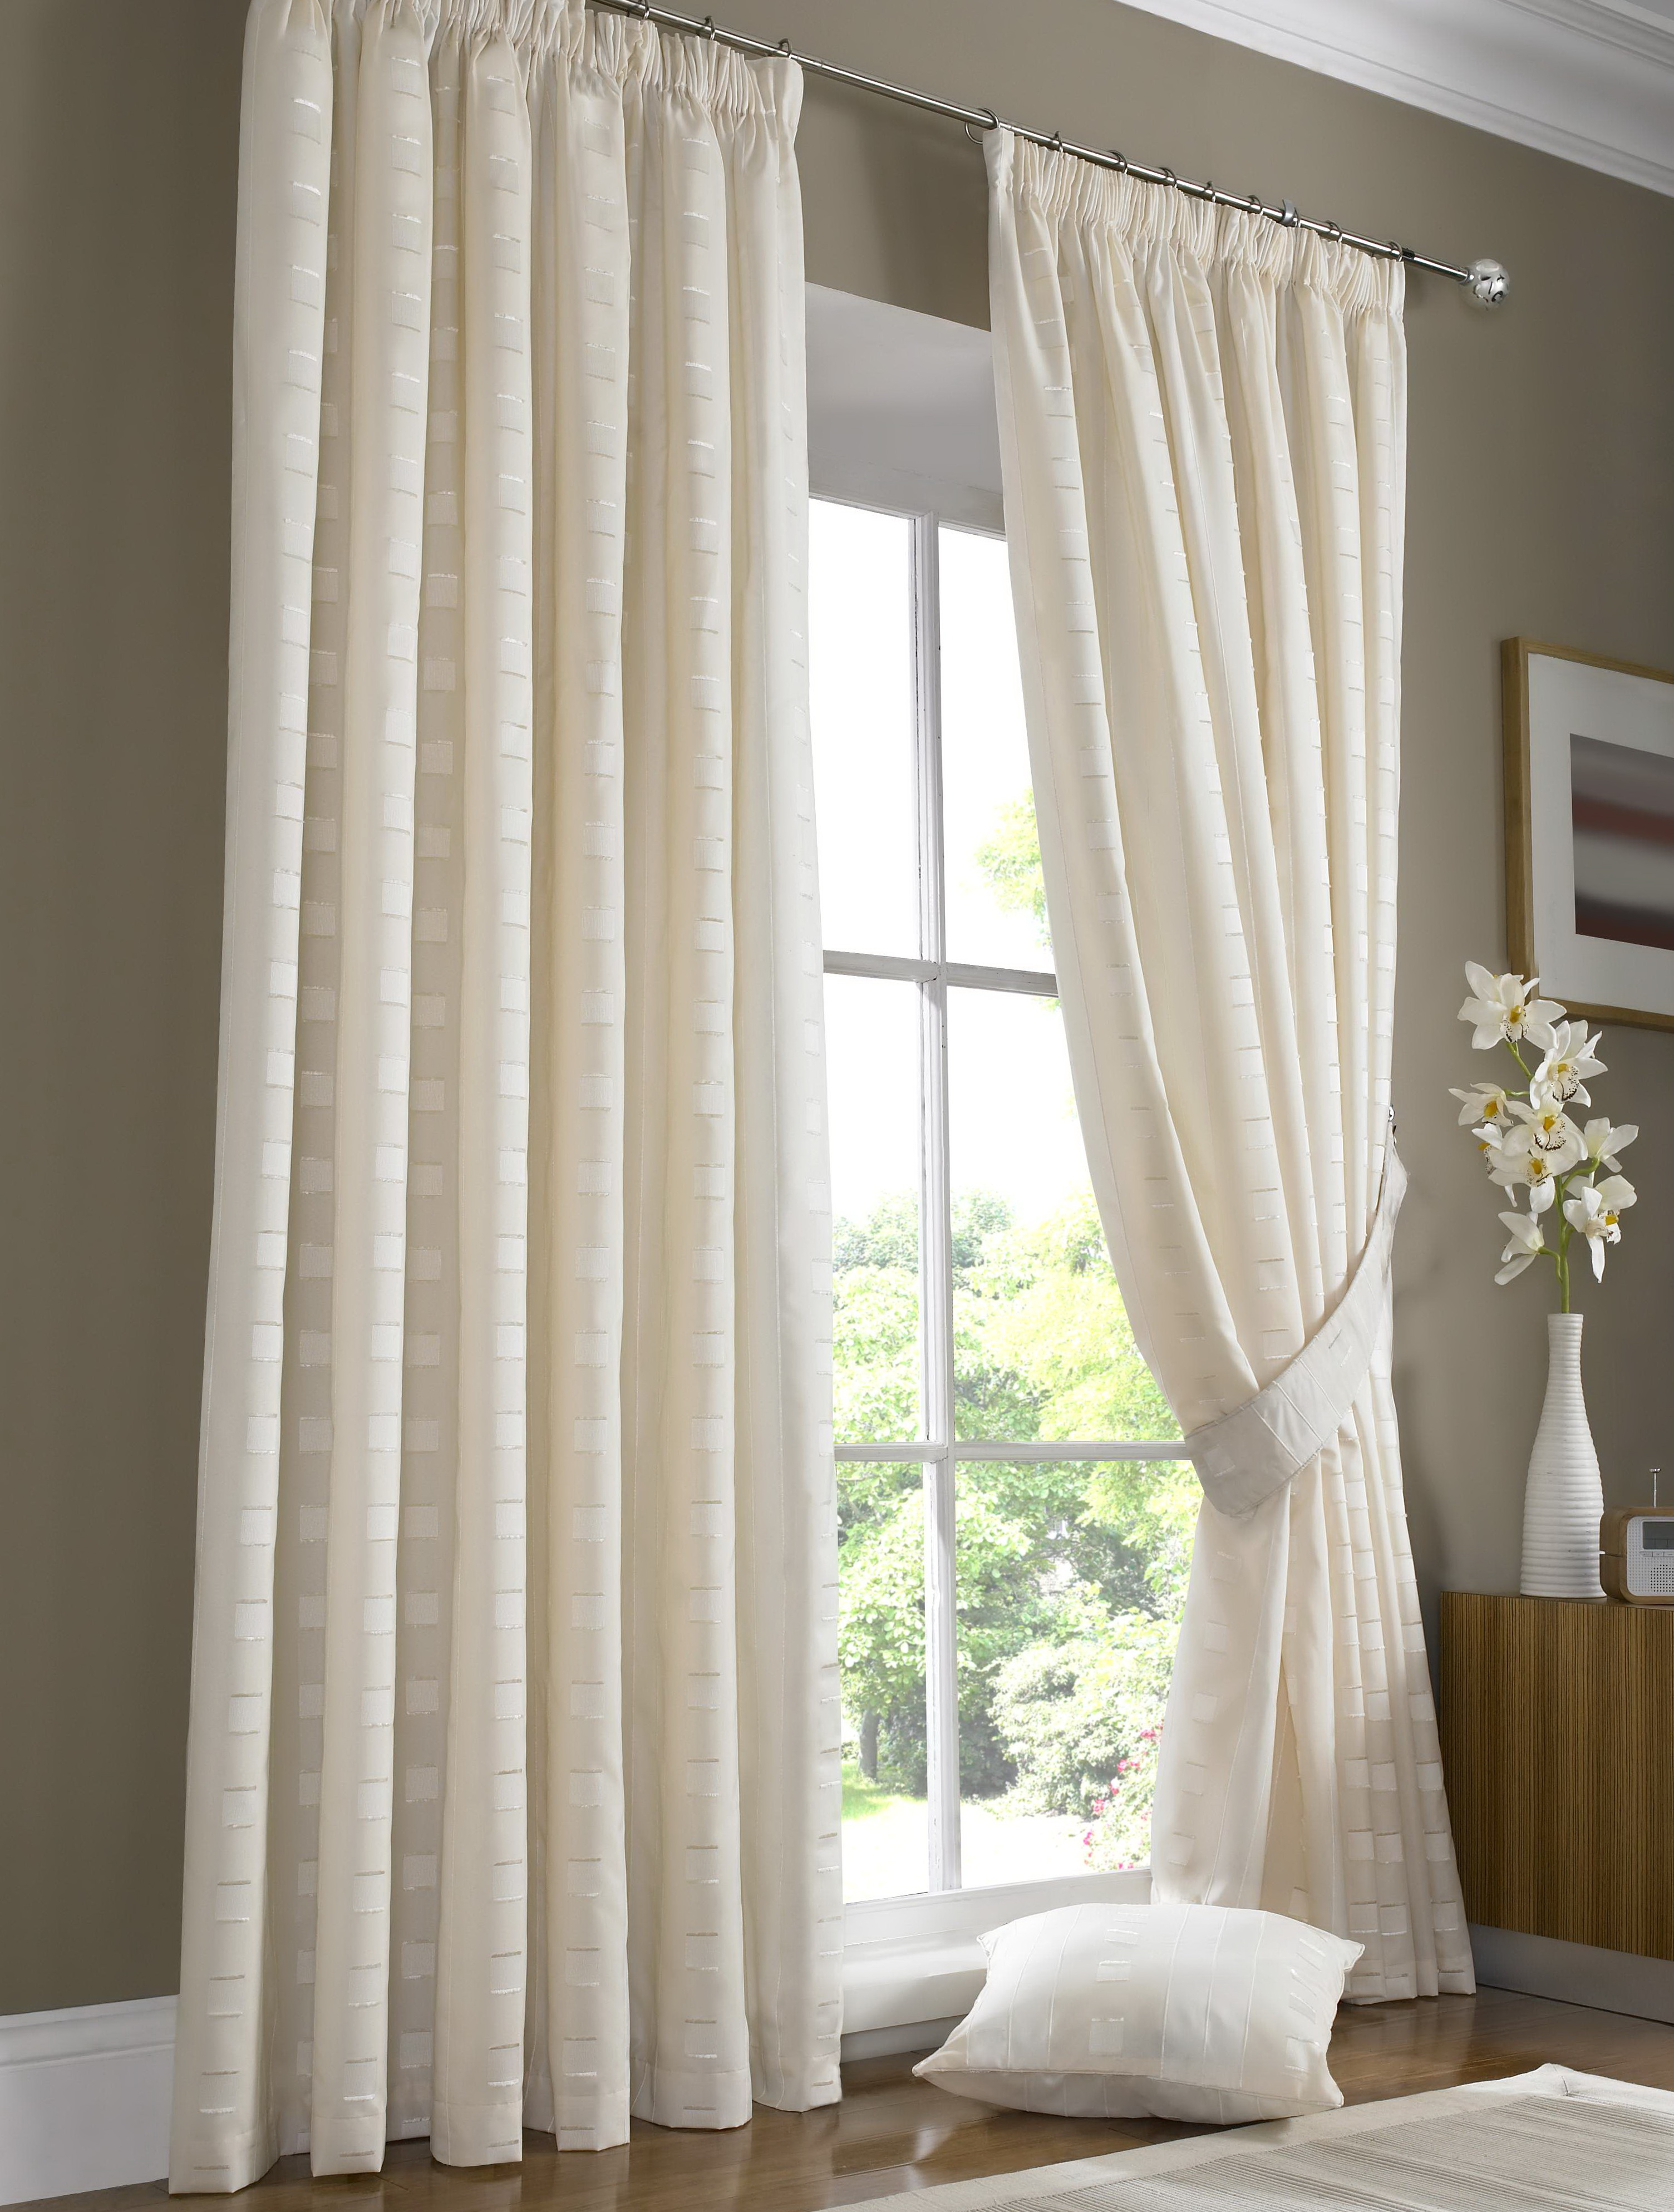 formidable curtains photos combination vs tips size angel news curtain inspirations to and roman blinds full of inspiration drapes match